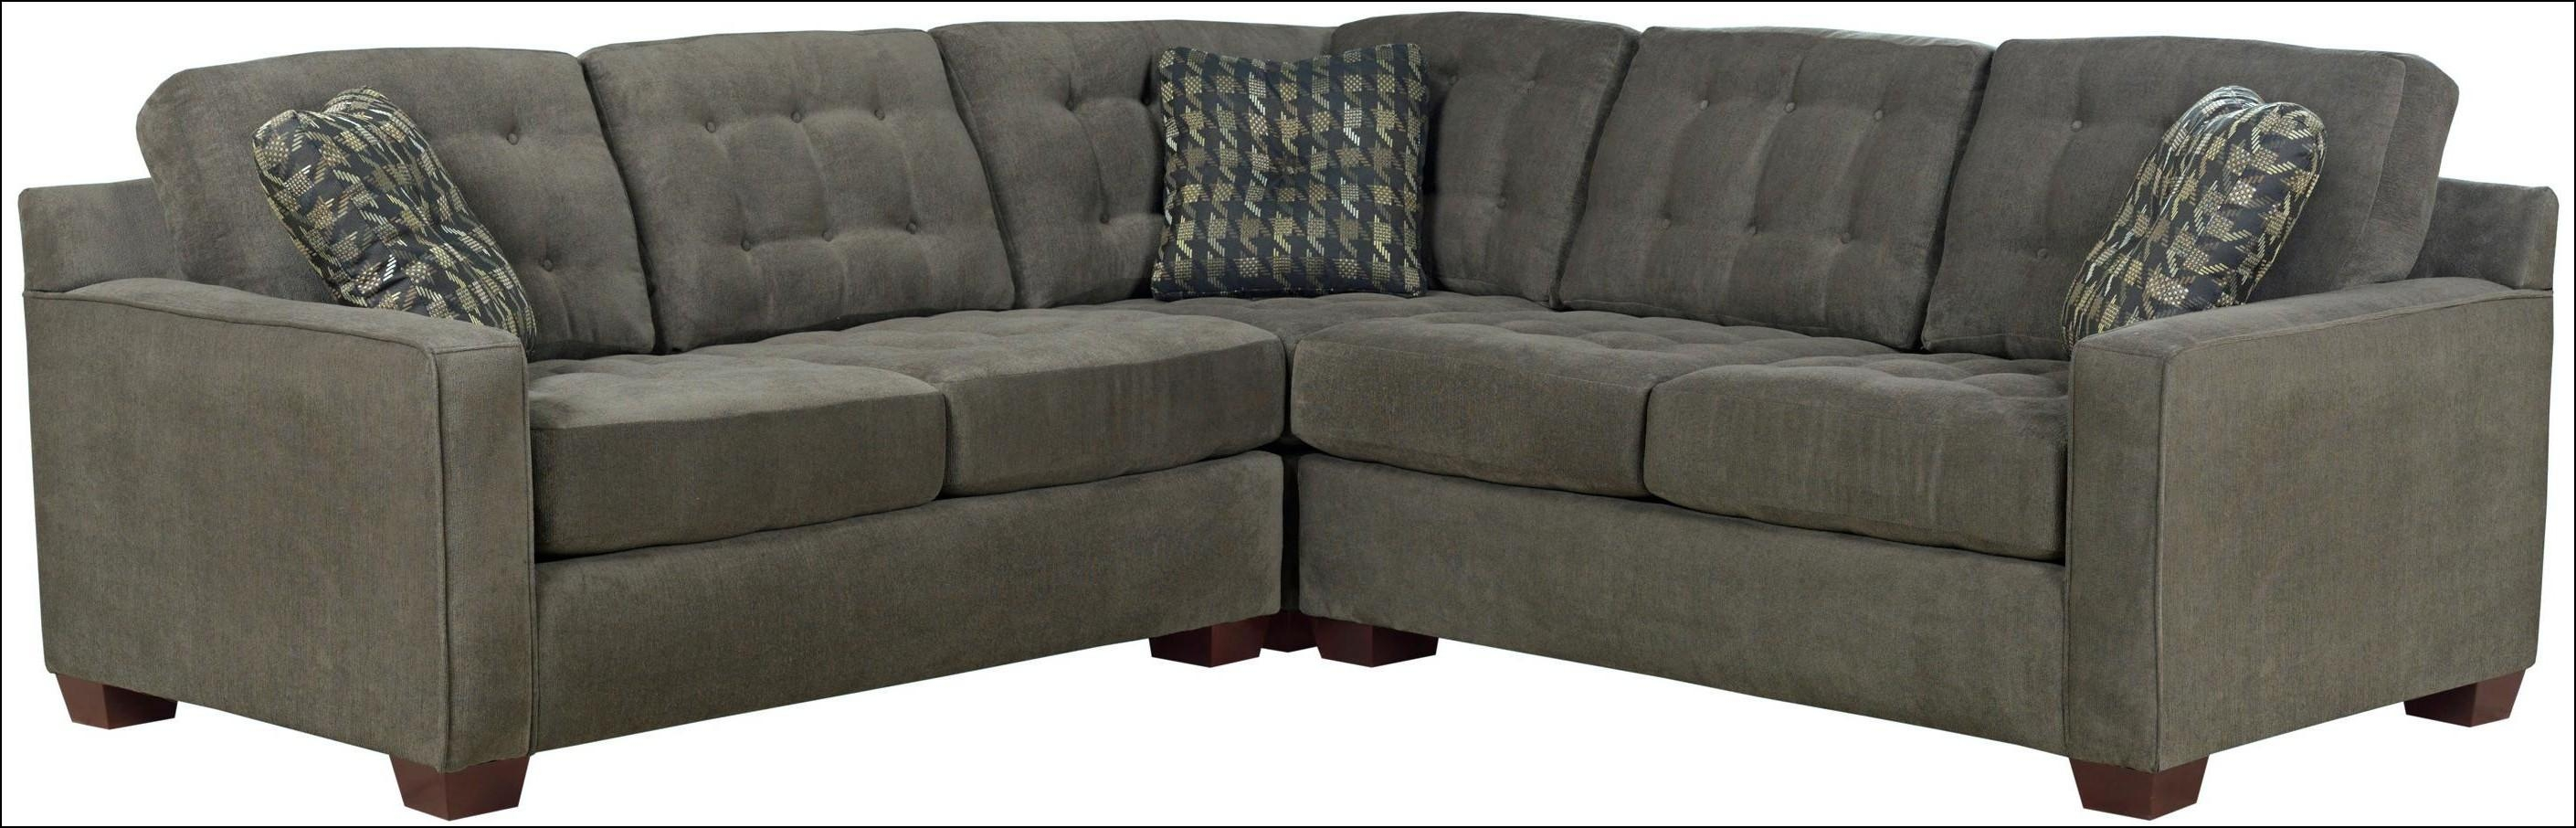 20 best ideas craigslist sectional sofas sofa ideas With small sectional sofa craigslist